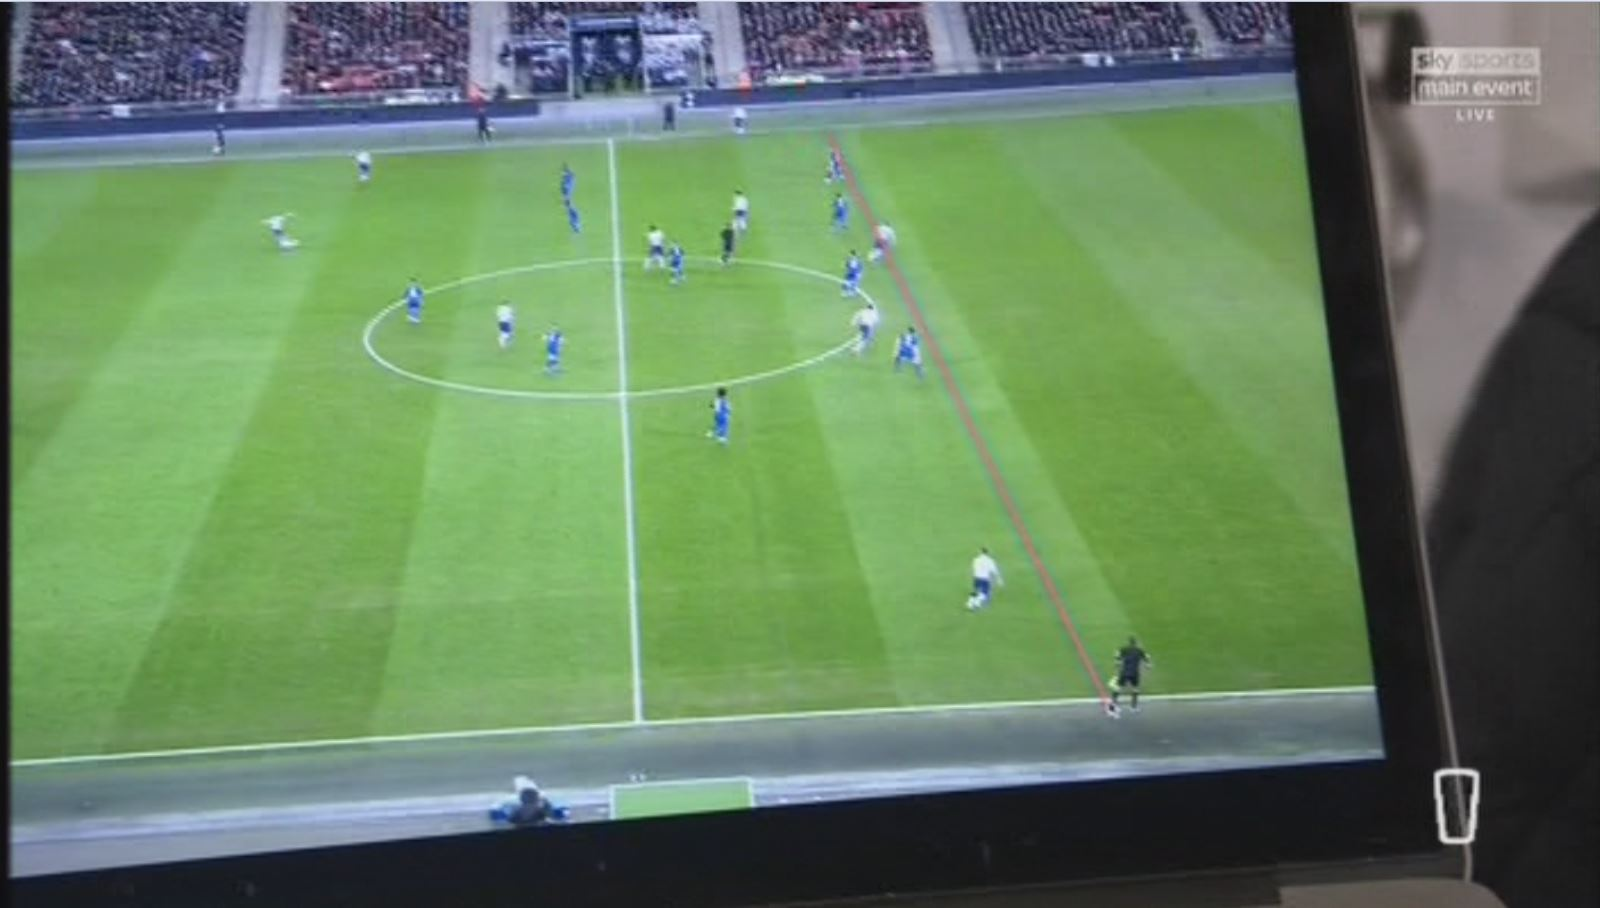 Chelsea boss Maurizio Sarri says new camera angle proves Harry Kane was offside before penalty